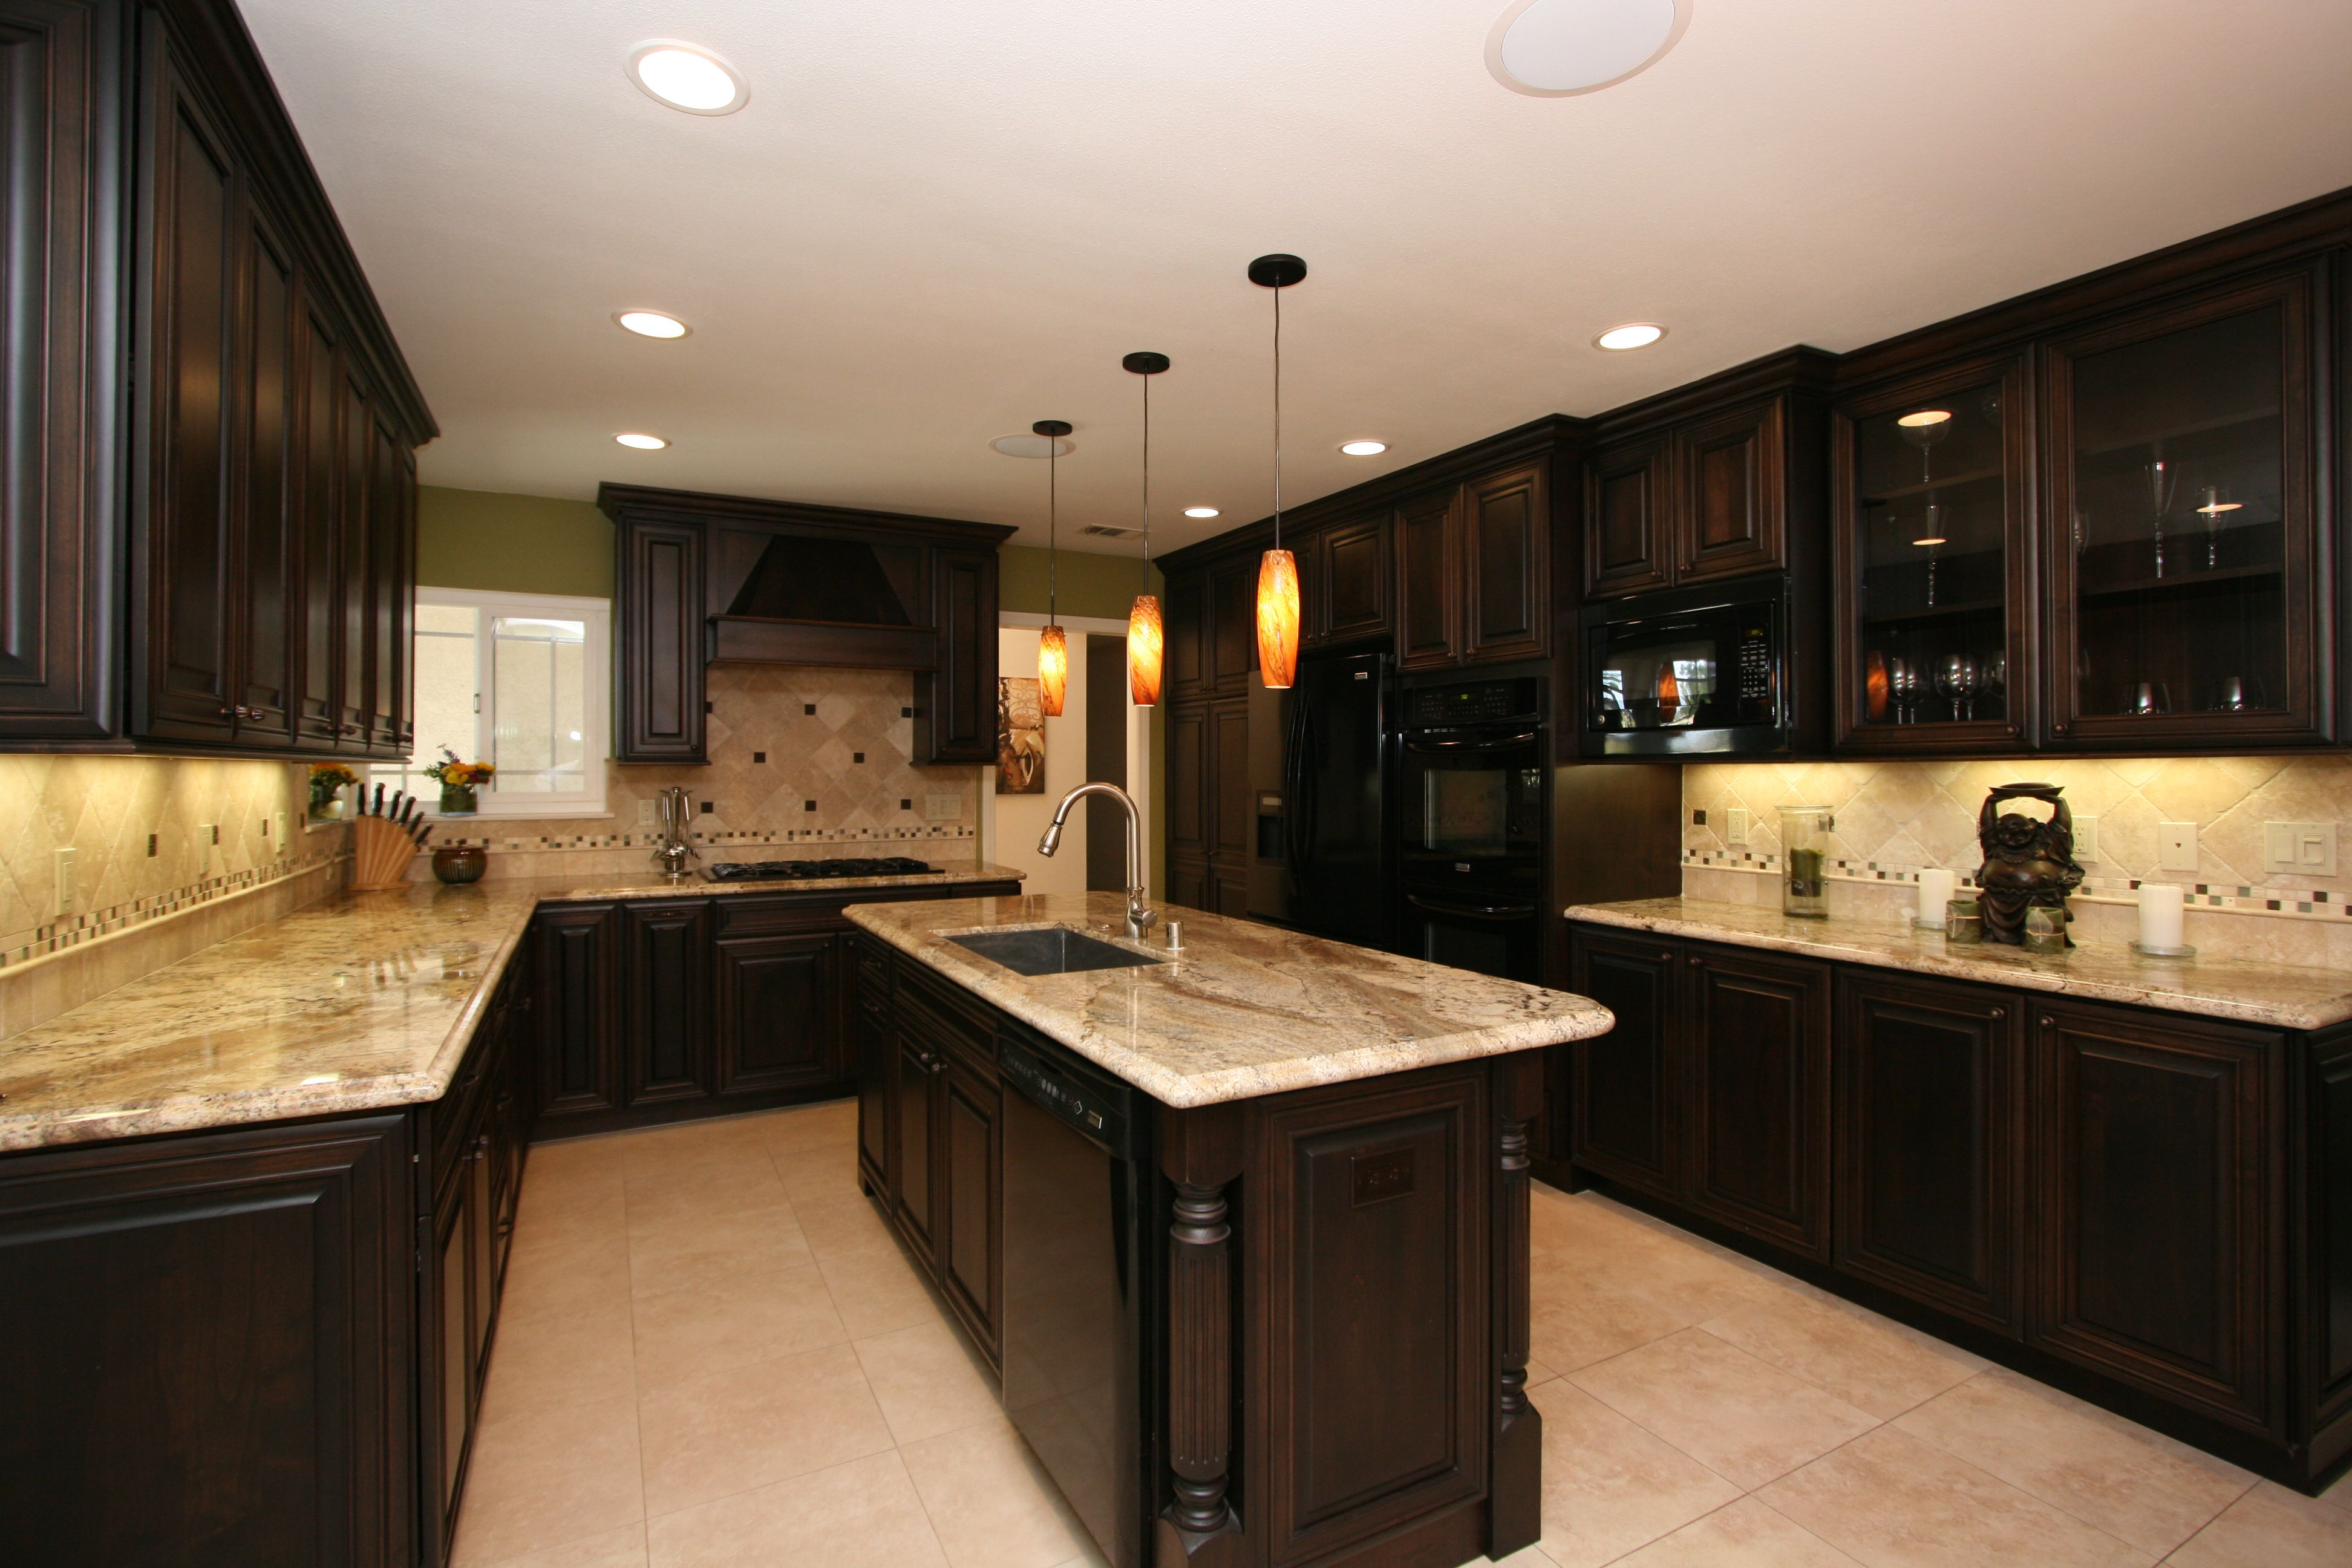 Dark cabinets with light countertops | Cheap kitchen ... on Backsplash Ideas For Dark Cabinets And Light Countertops  id=47881